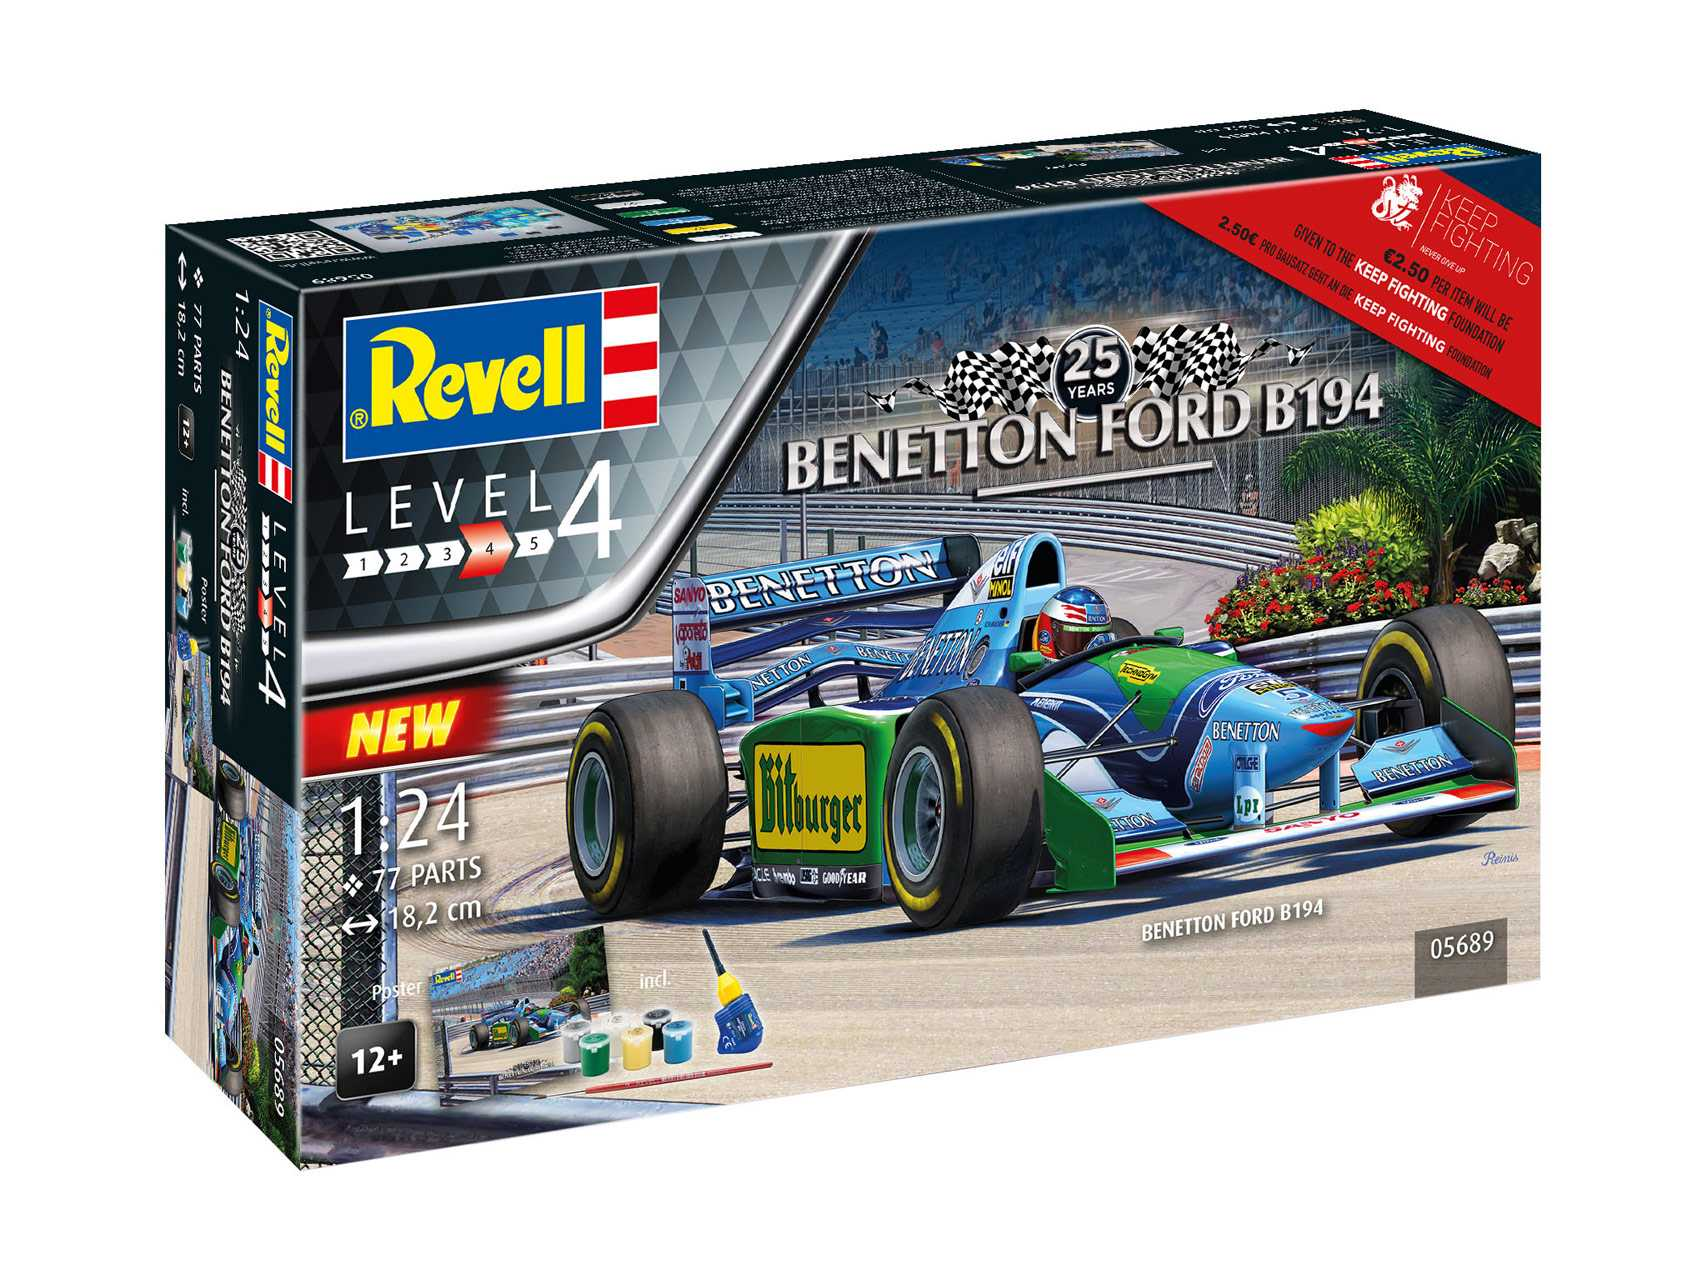 1:24 Benetton Ford B194, 25th Anniversary Benetton Ford B194 (Gift Set)